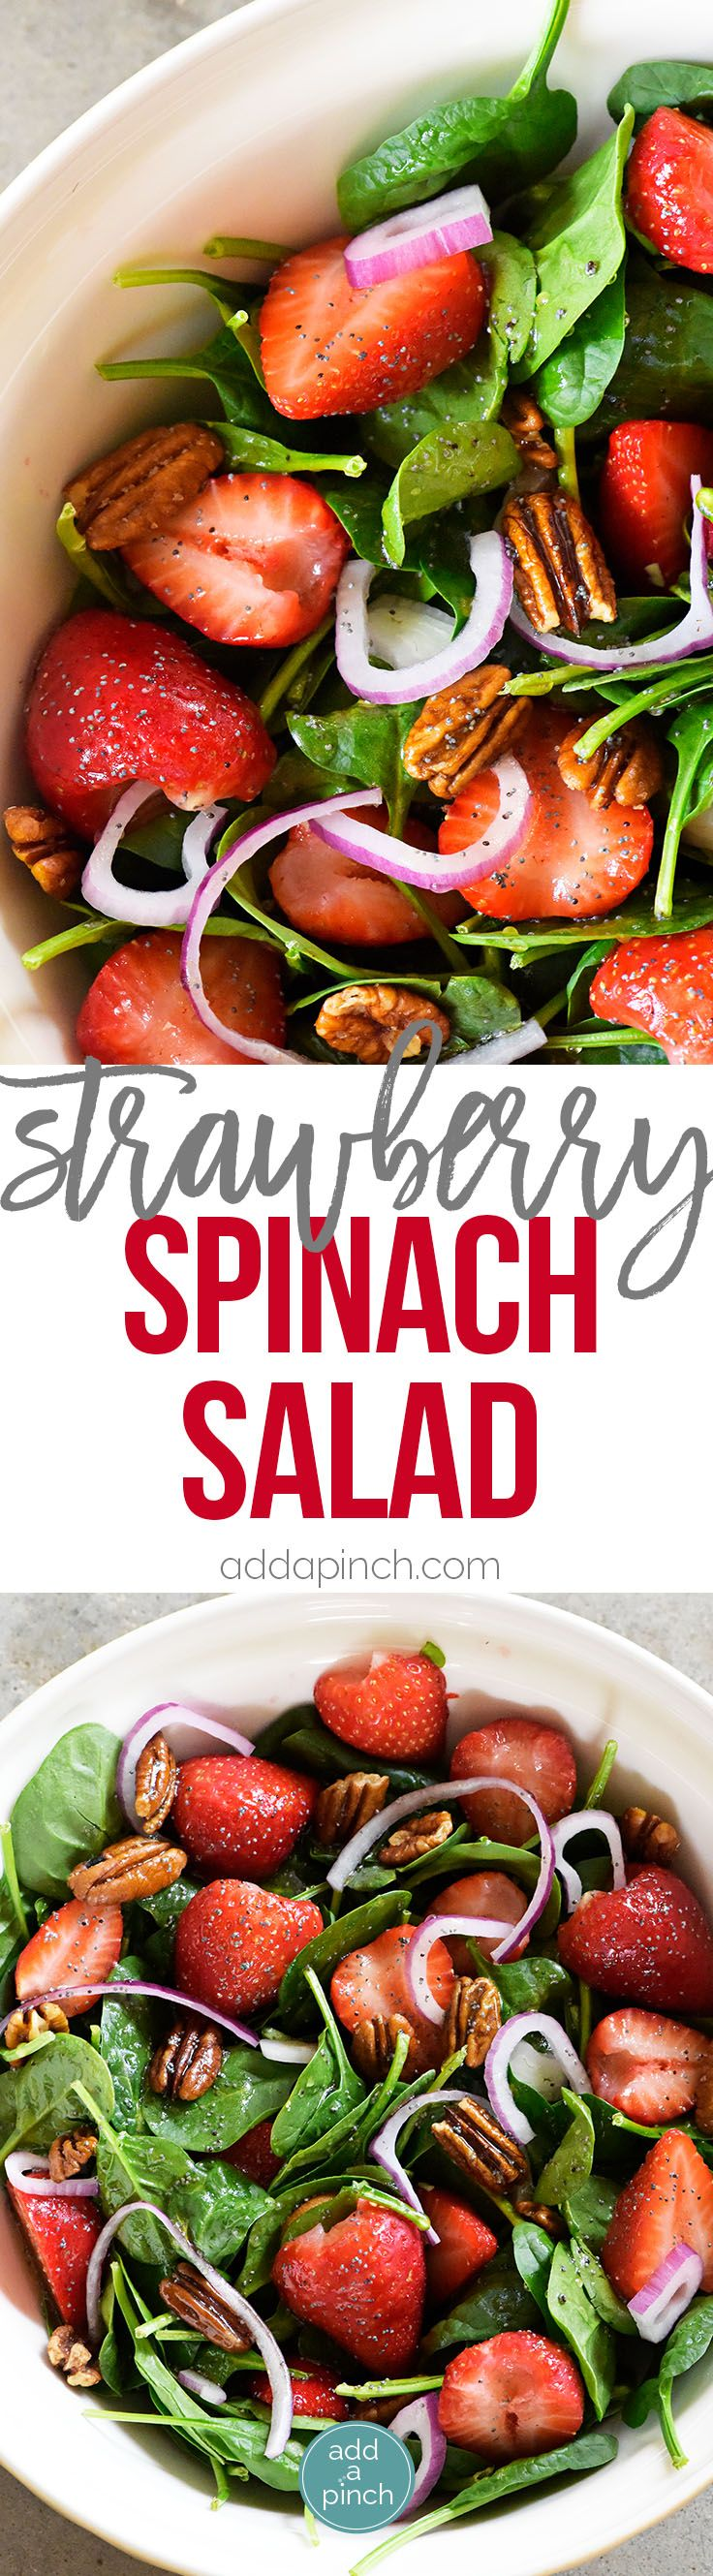 Strawberry Spinach Salad Recipe - Strawberry Spinach Salad topped with an easy Poppy Seed Dressing makes for a beautiful and delicious spring and summer salad recipe. Perfect for parties, picnics, and get-togethers! Always a crowd favorite! // addapinch.com